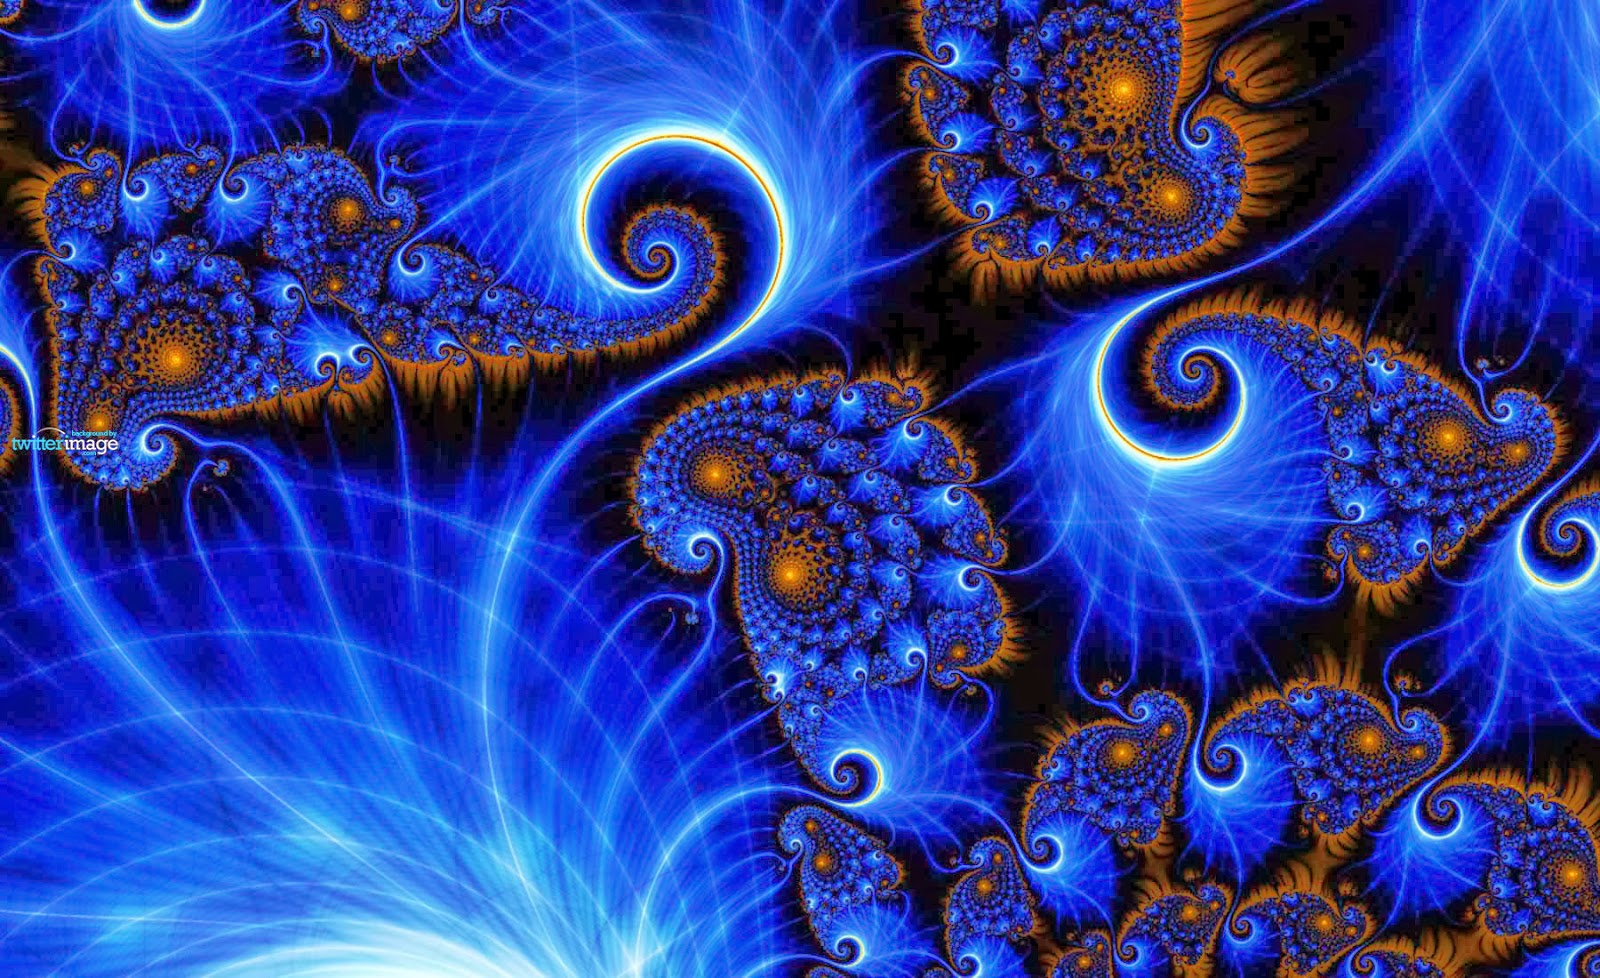 Blue-Abstract-Fractal-pattern-Vector-design-HD-wallpaper.jpg